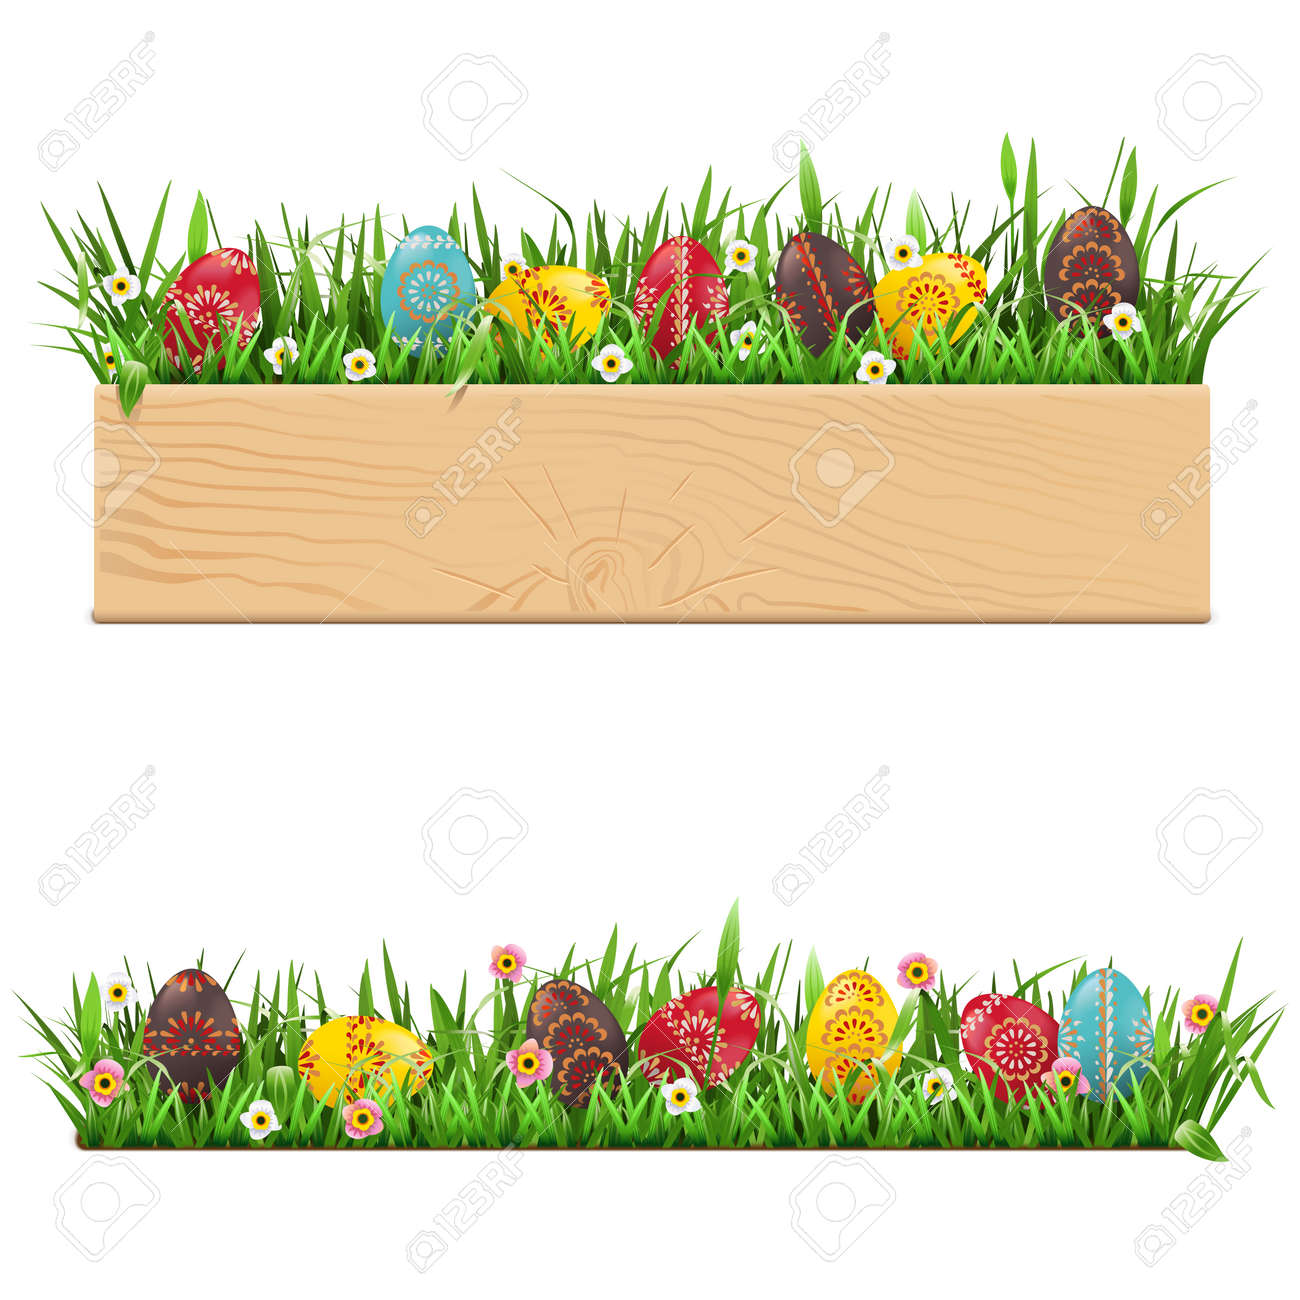 Vector Easter Border with Painted Eggs isolated on white background - 163516428